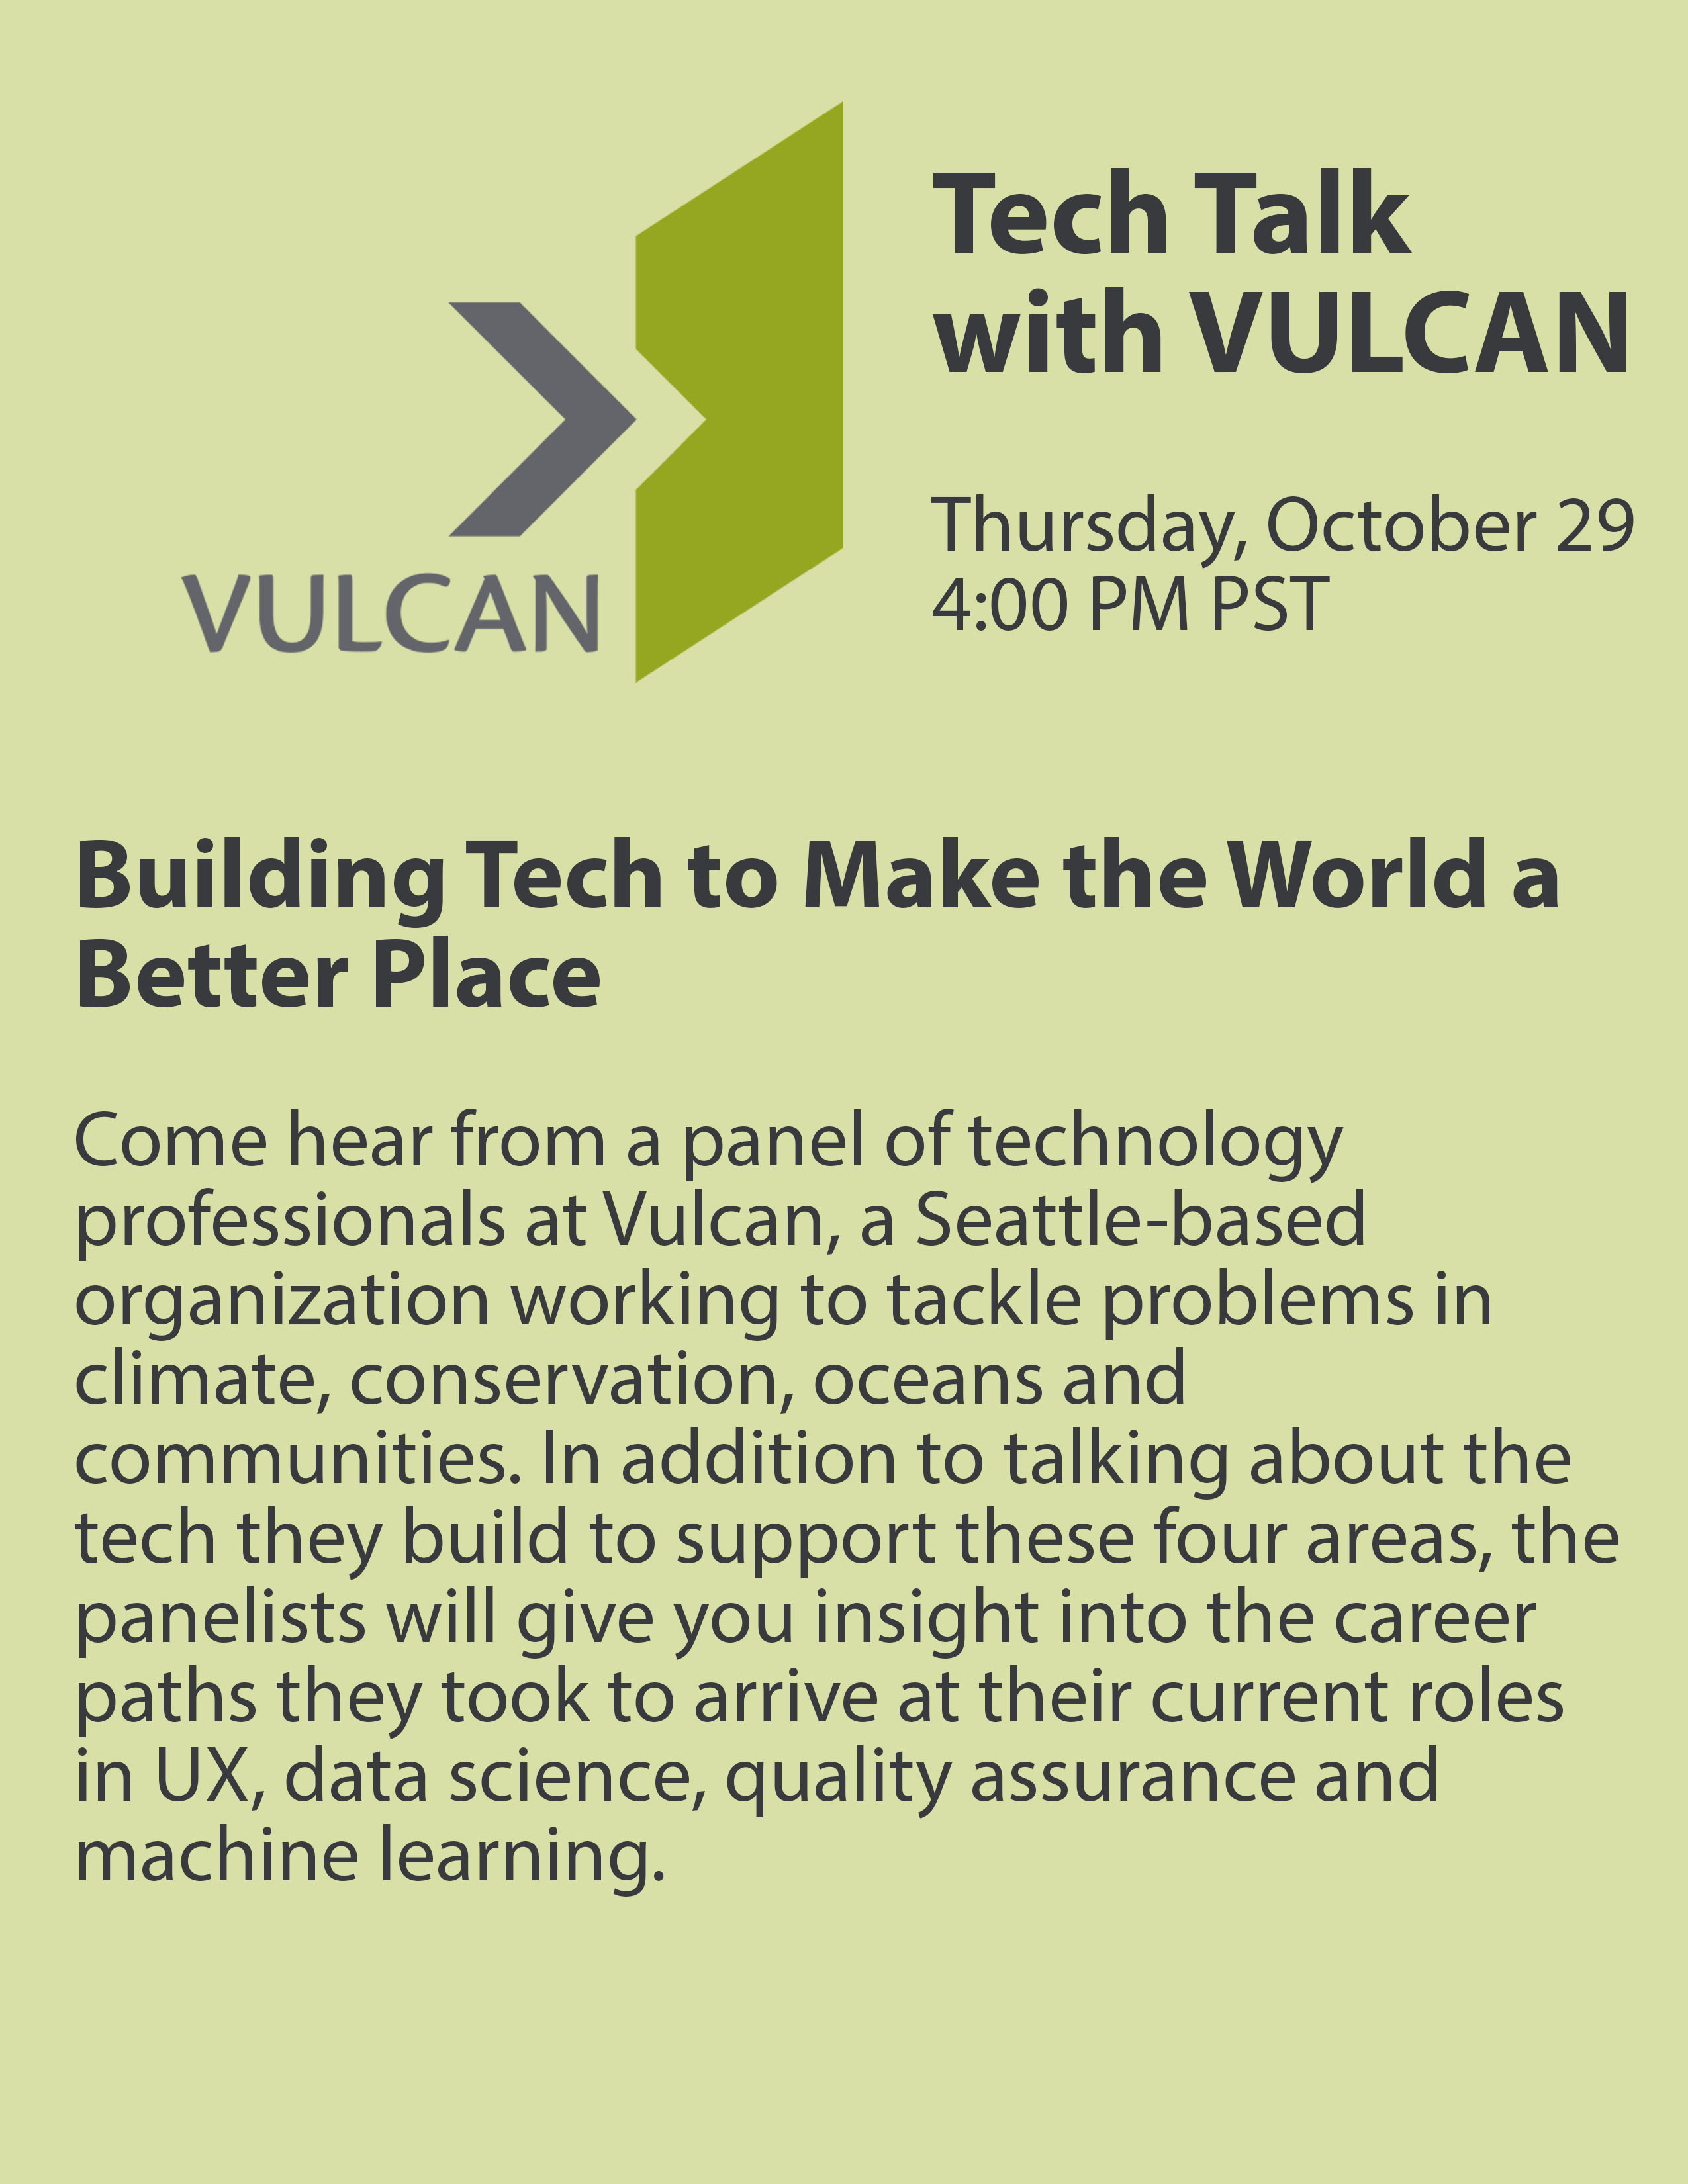 Poster for Tech Talk with Vulcan